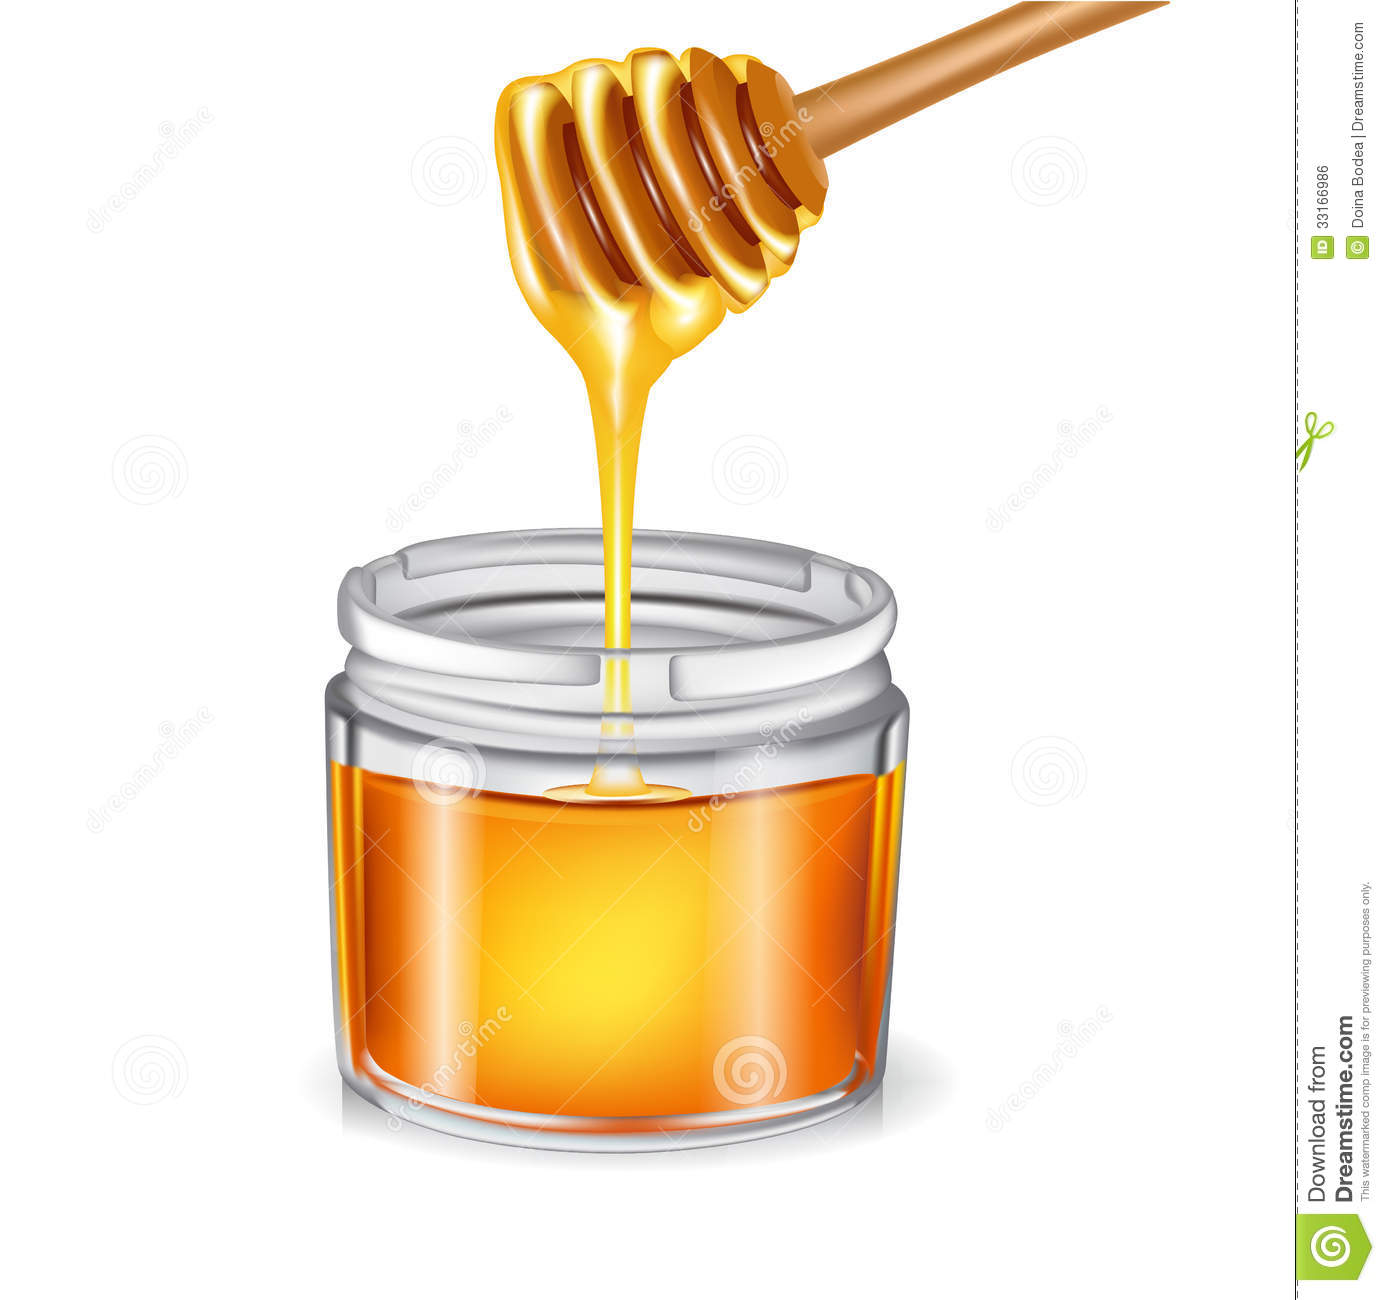 honey-clipart-honey-dipper-pouring-jar-isolated-33166986.jpg